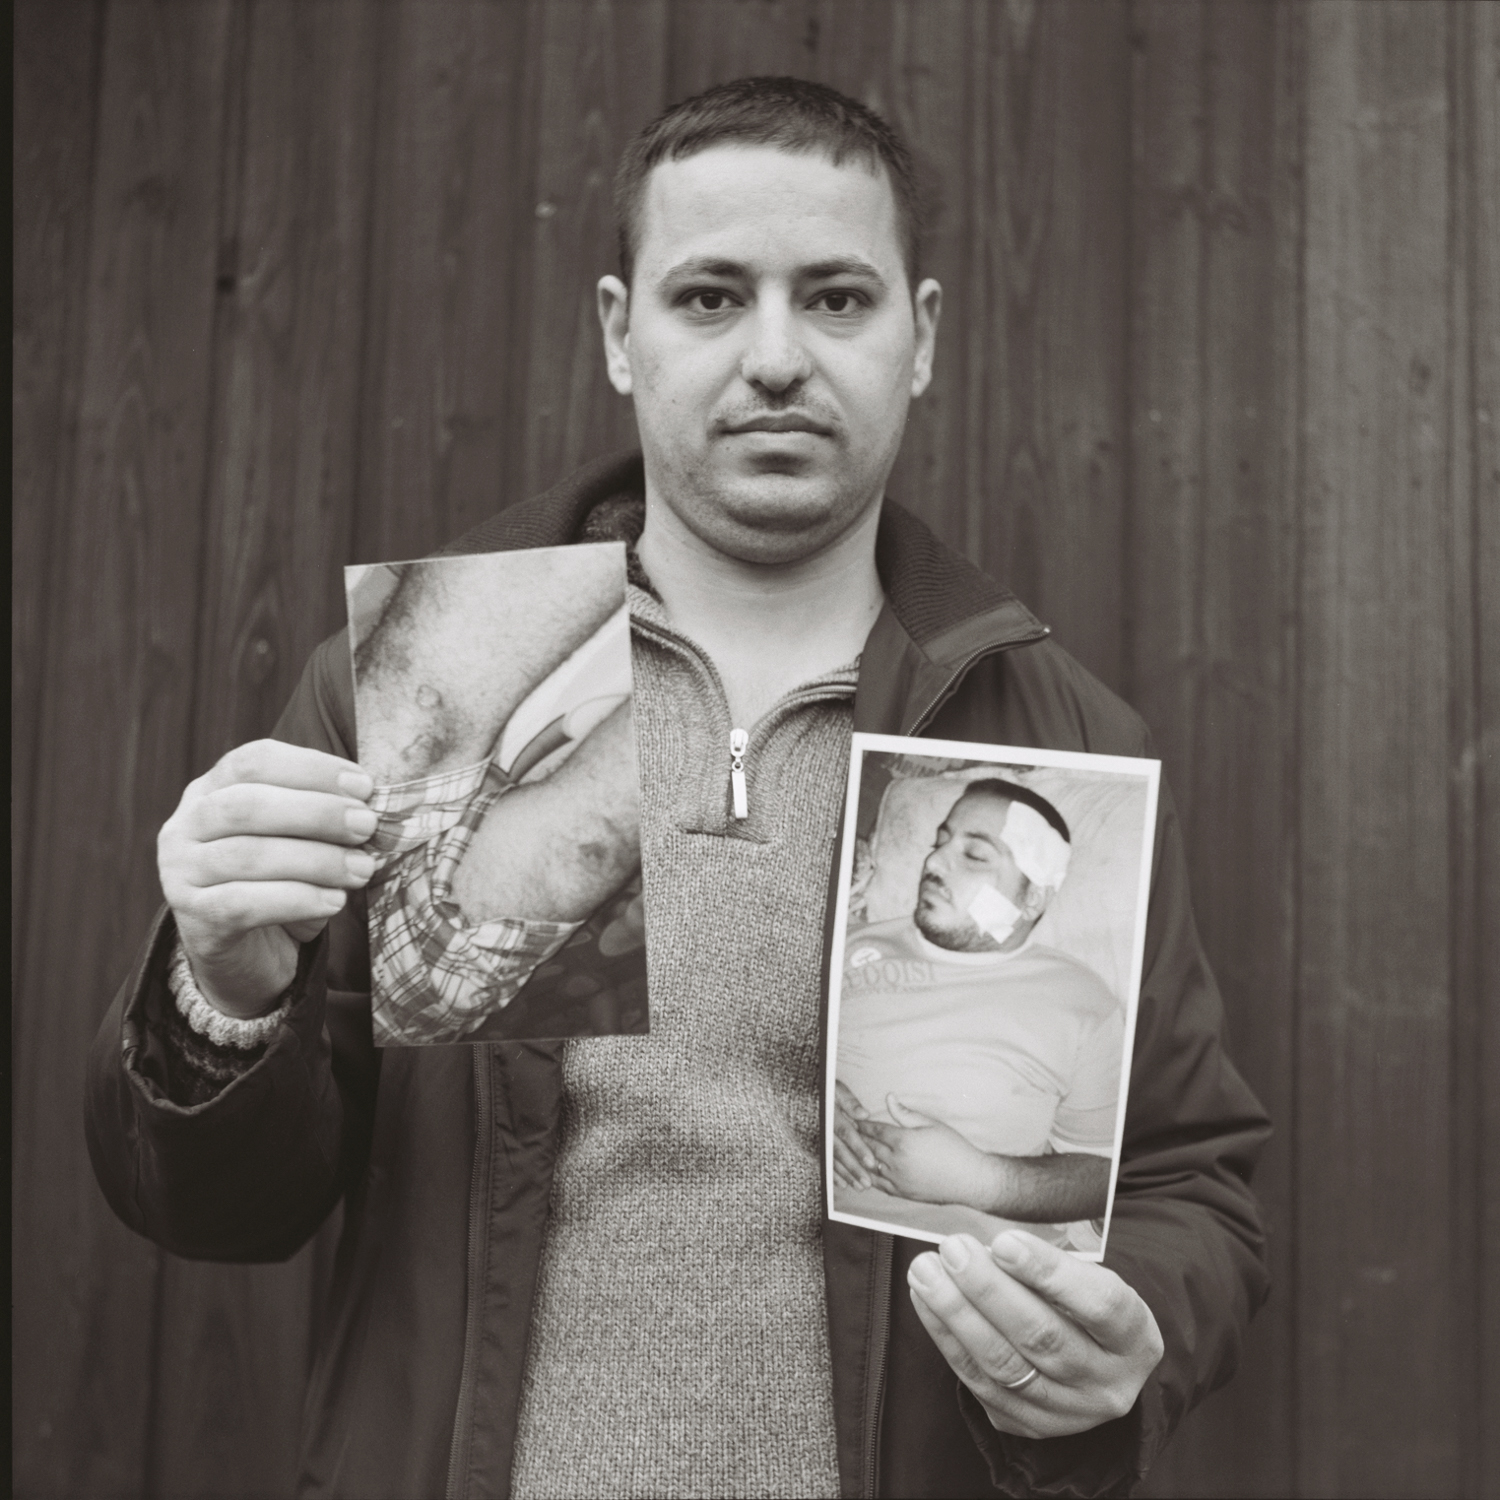 Mariam's husband shows images of his wounds from ____. Czechia, February 2016.